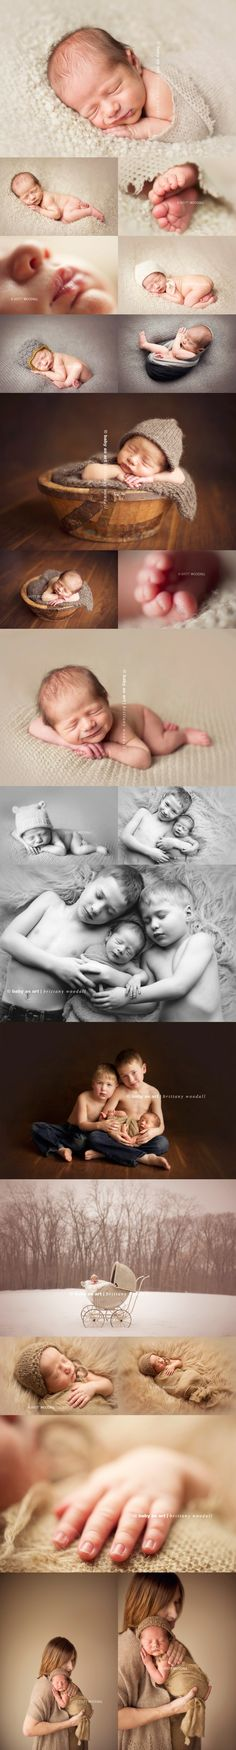 Picture ideas - I'm dying...so sweet...